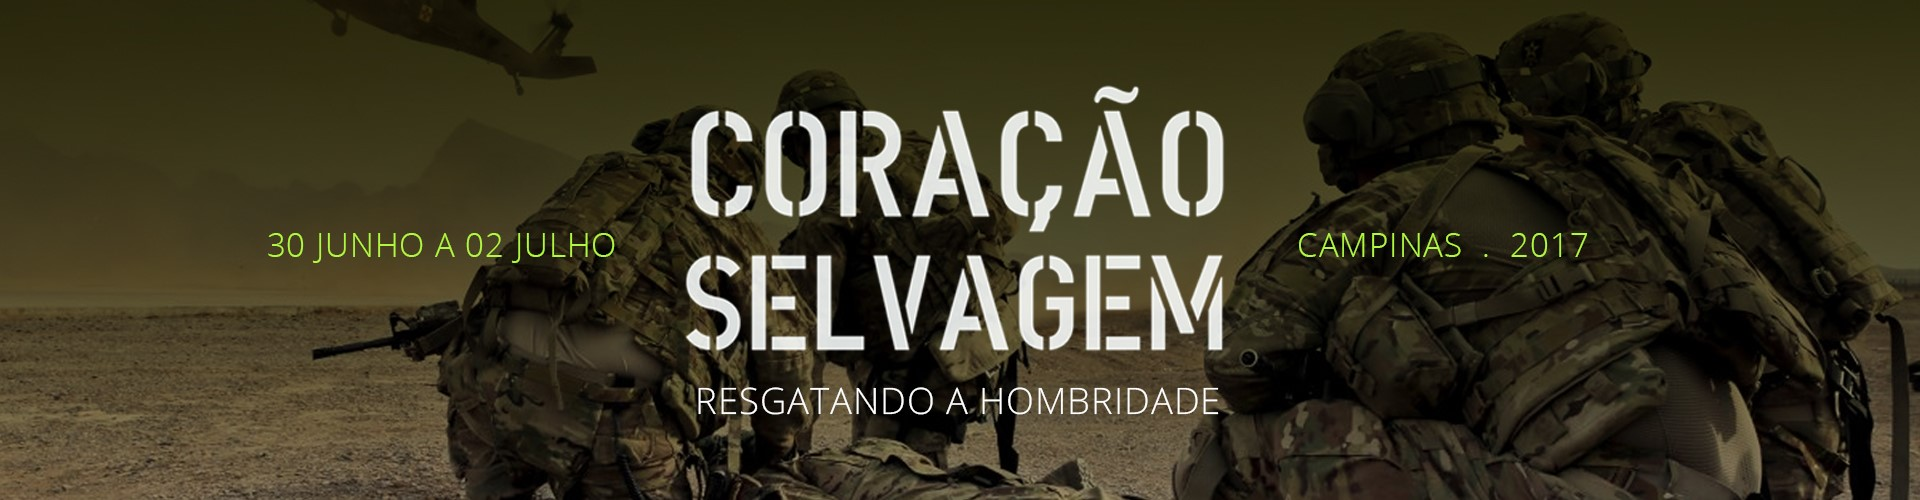 coracao-selvagem-banner